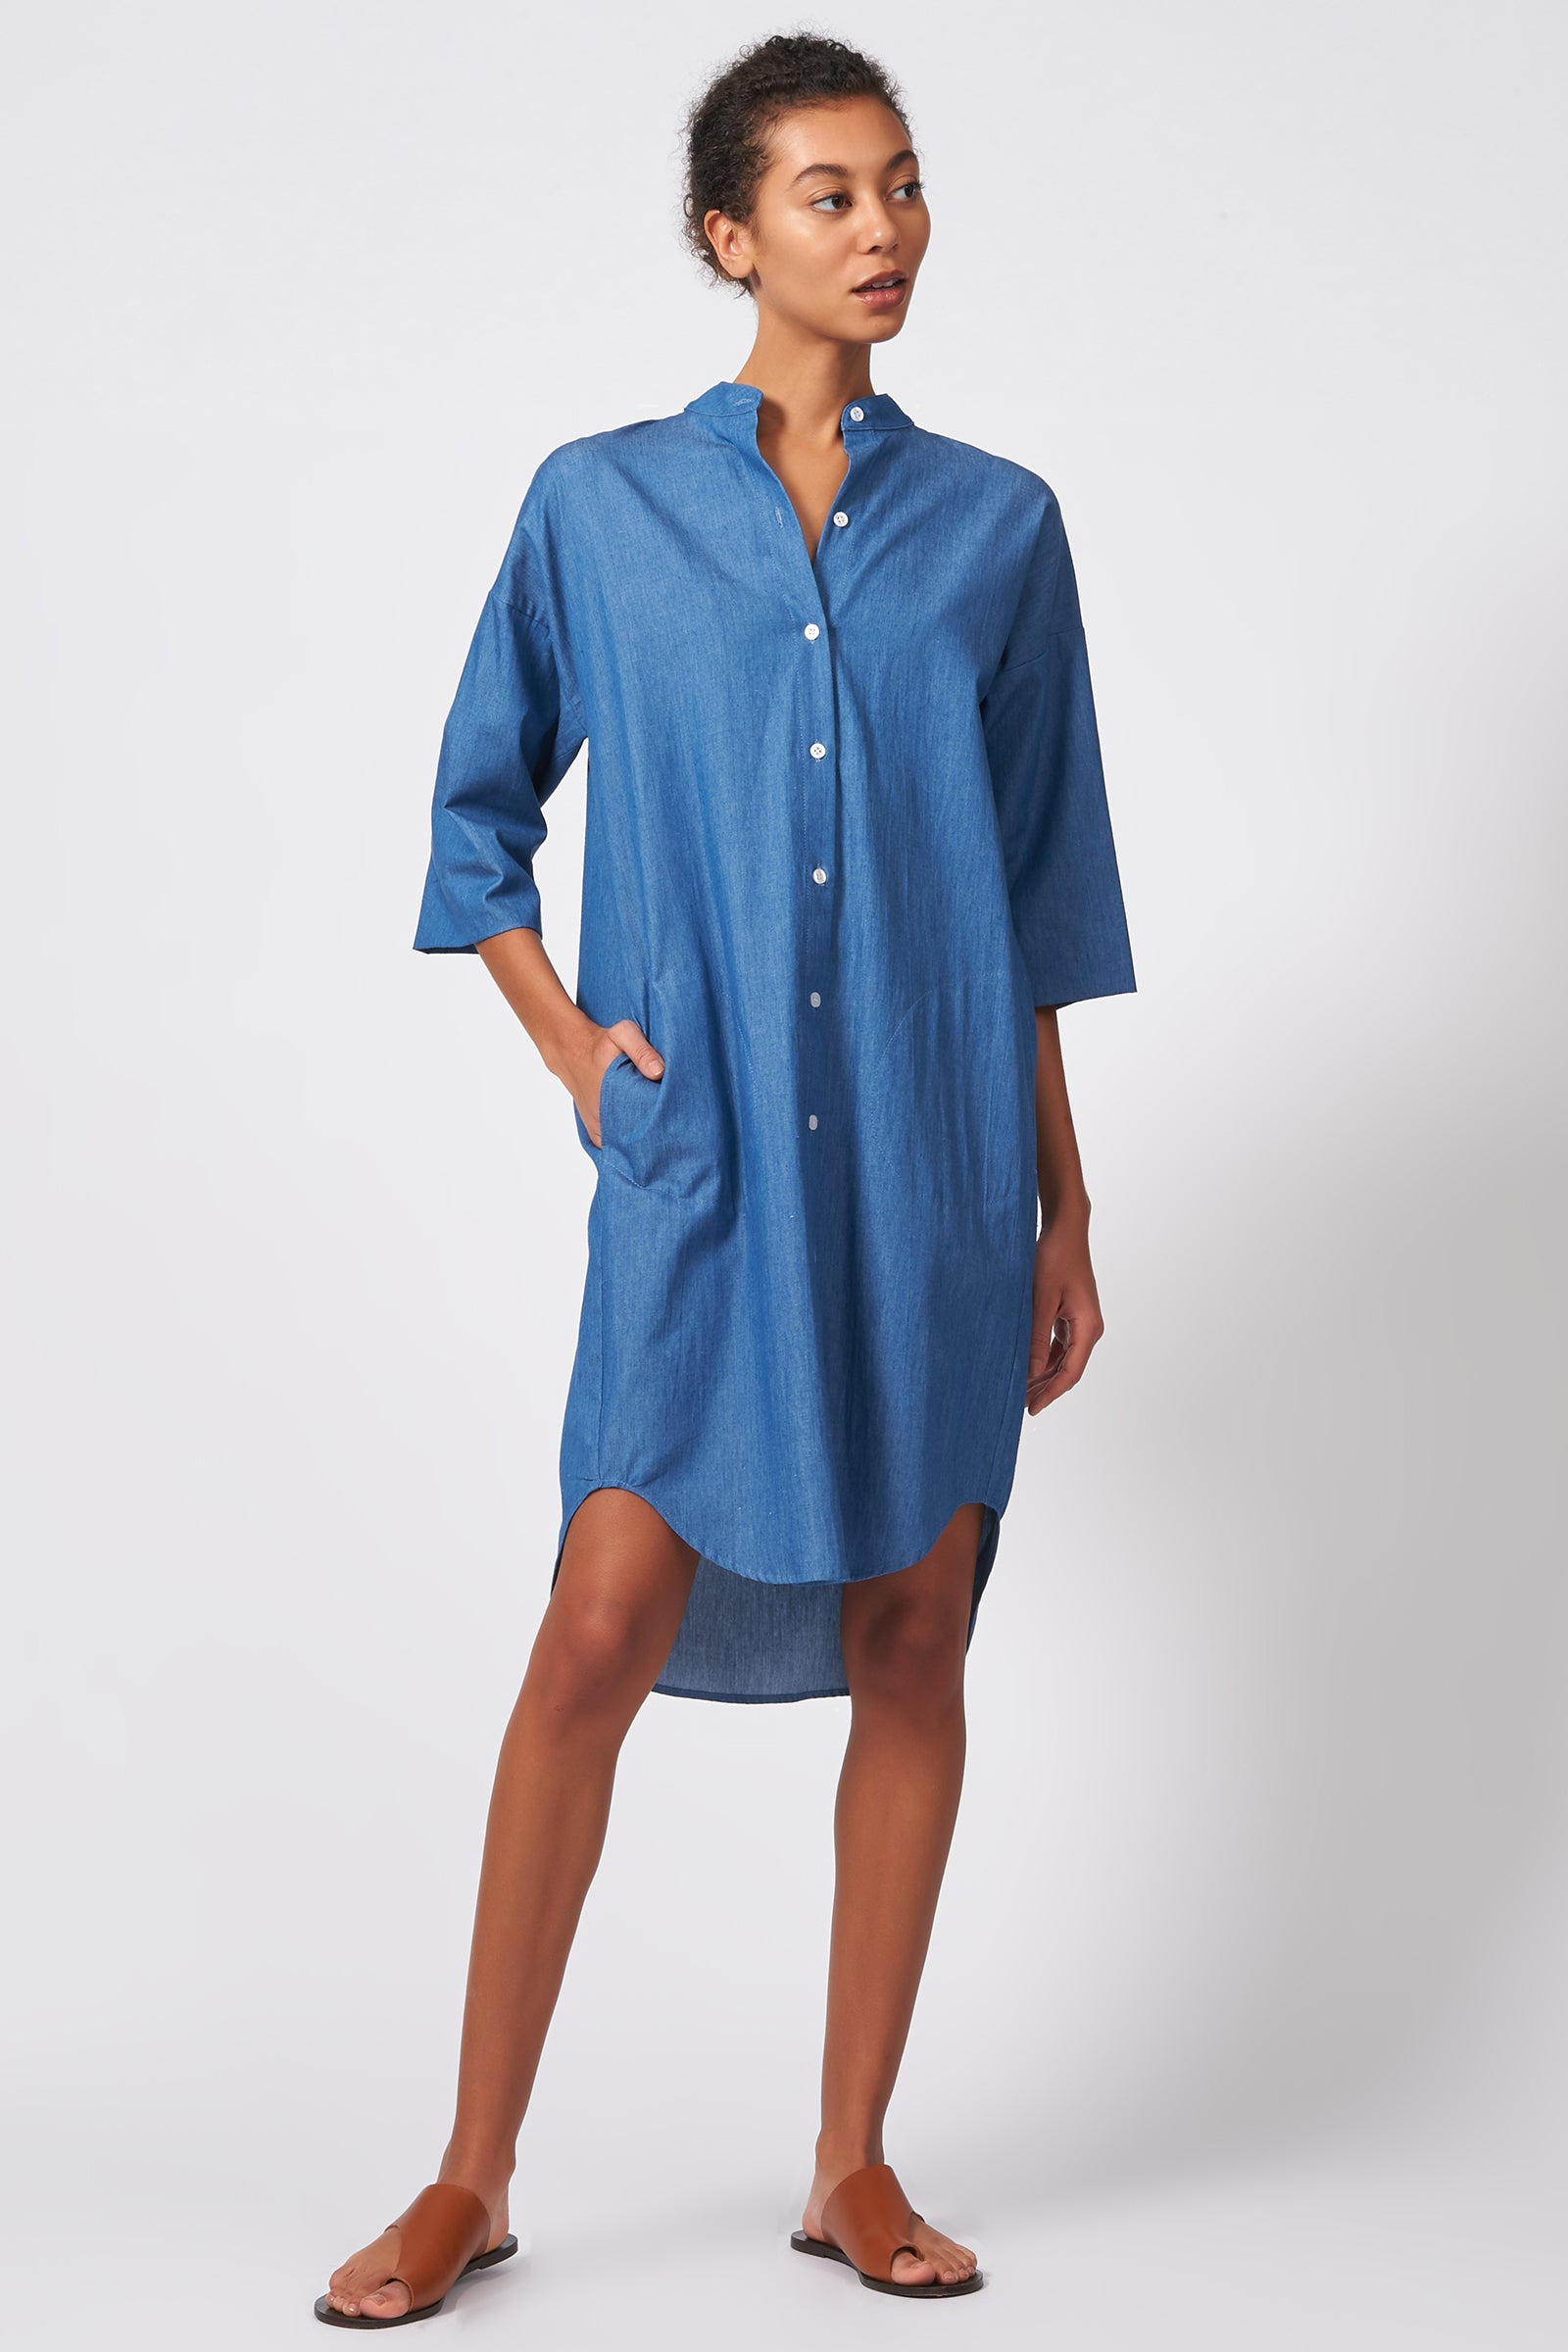 Kal Rieman Drop Sleeve Shirt Dress in Light Indigo on Model Front Full View